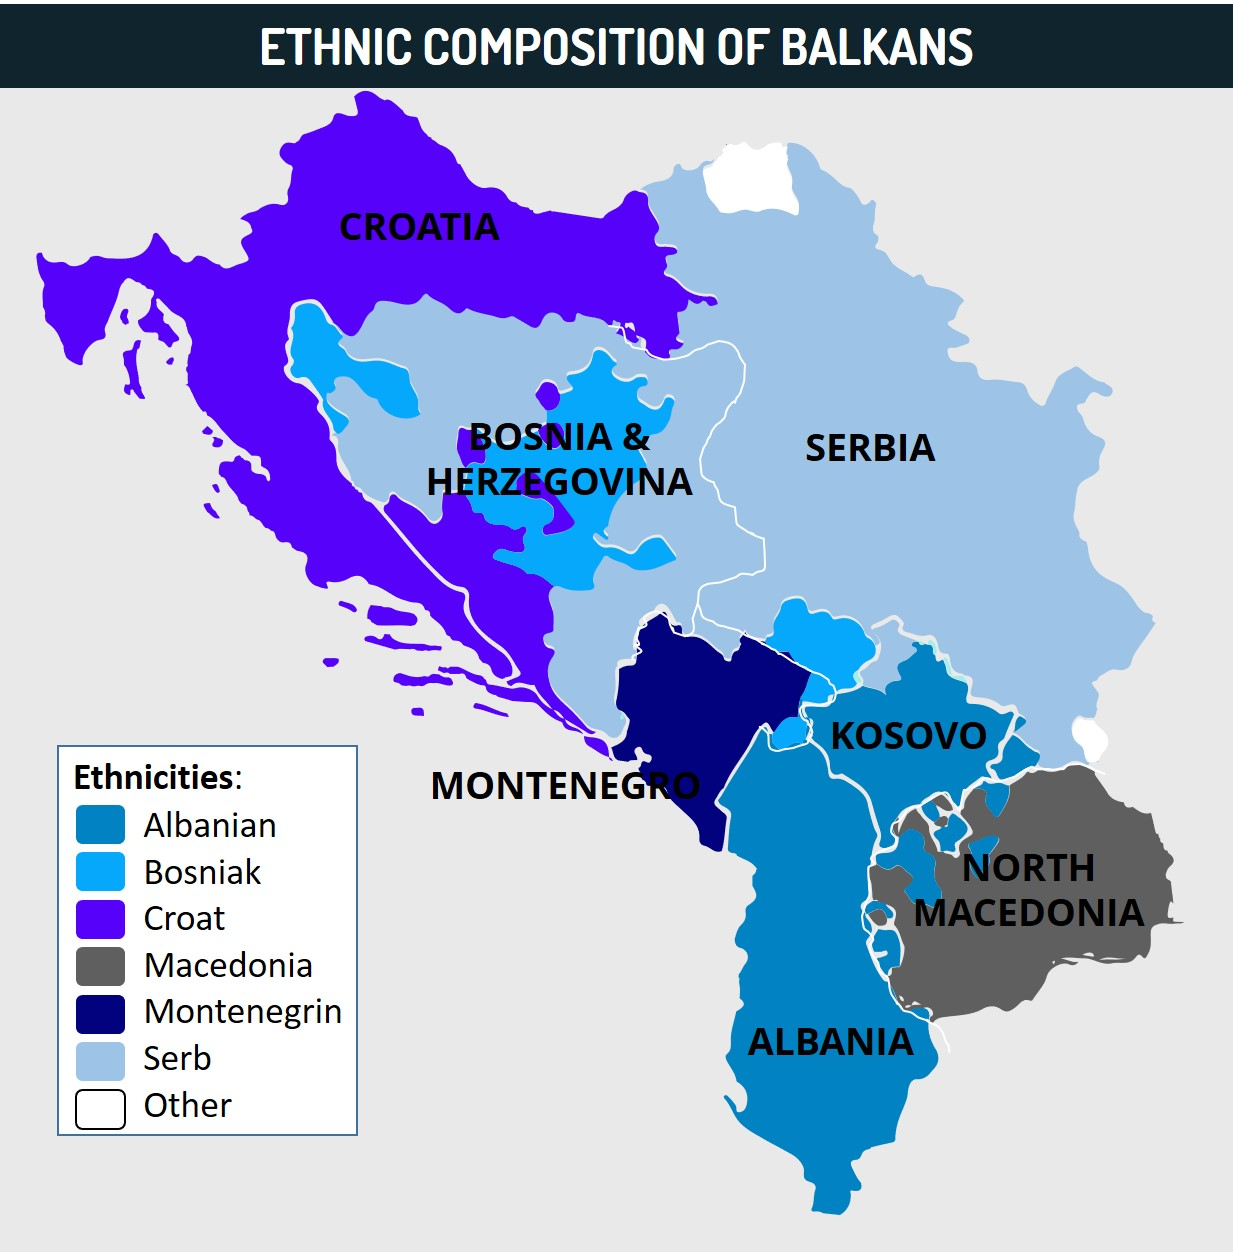 Ethnic Composition of Balkans